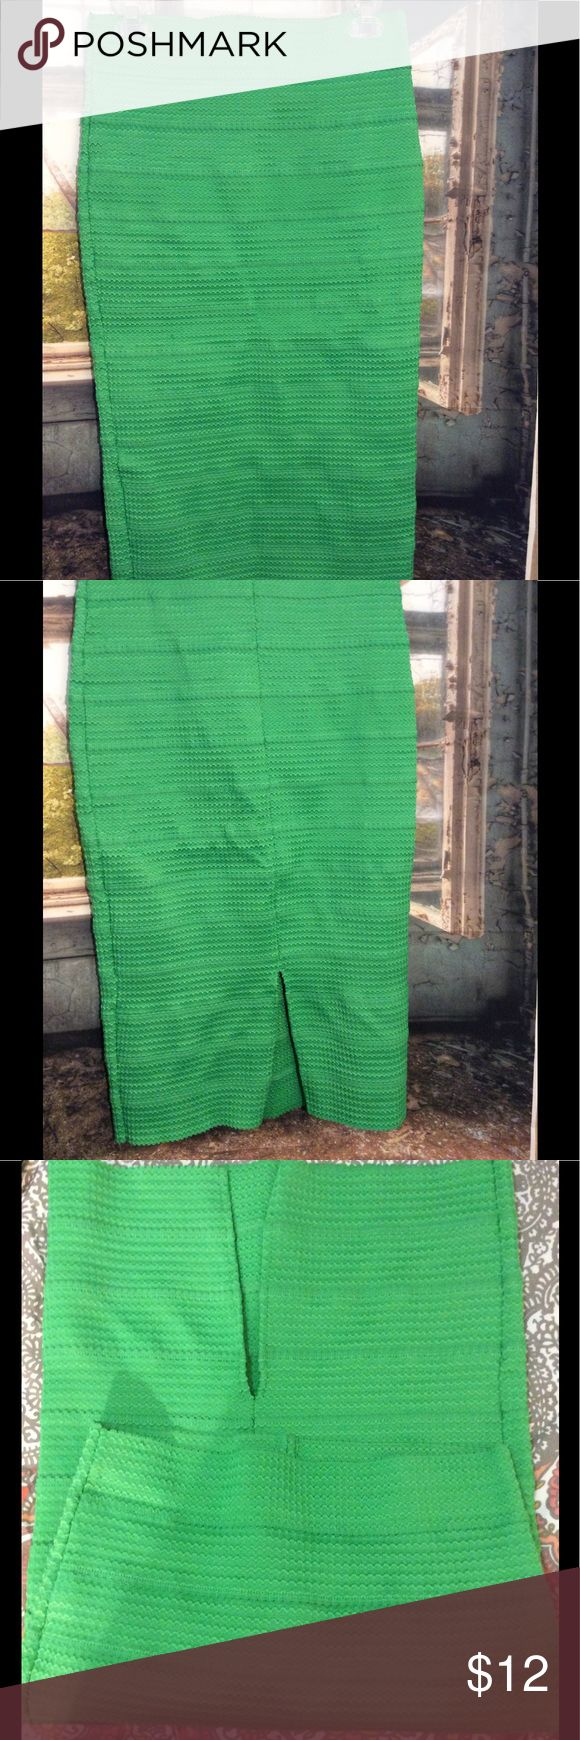 KELLY GREEN PENCIL SKIRT NY & CO New York and company Kelly green pencil skirt. Bandage wrap style lovely bright color great for spring wear to work or to any night on the town or coffee with the ladies. New York & Company Skirts Pencil